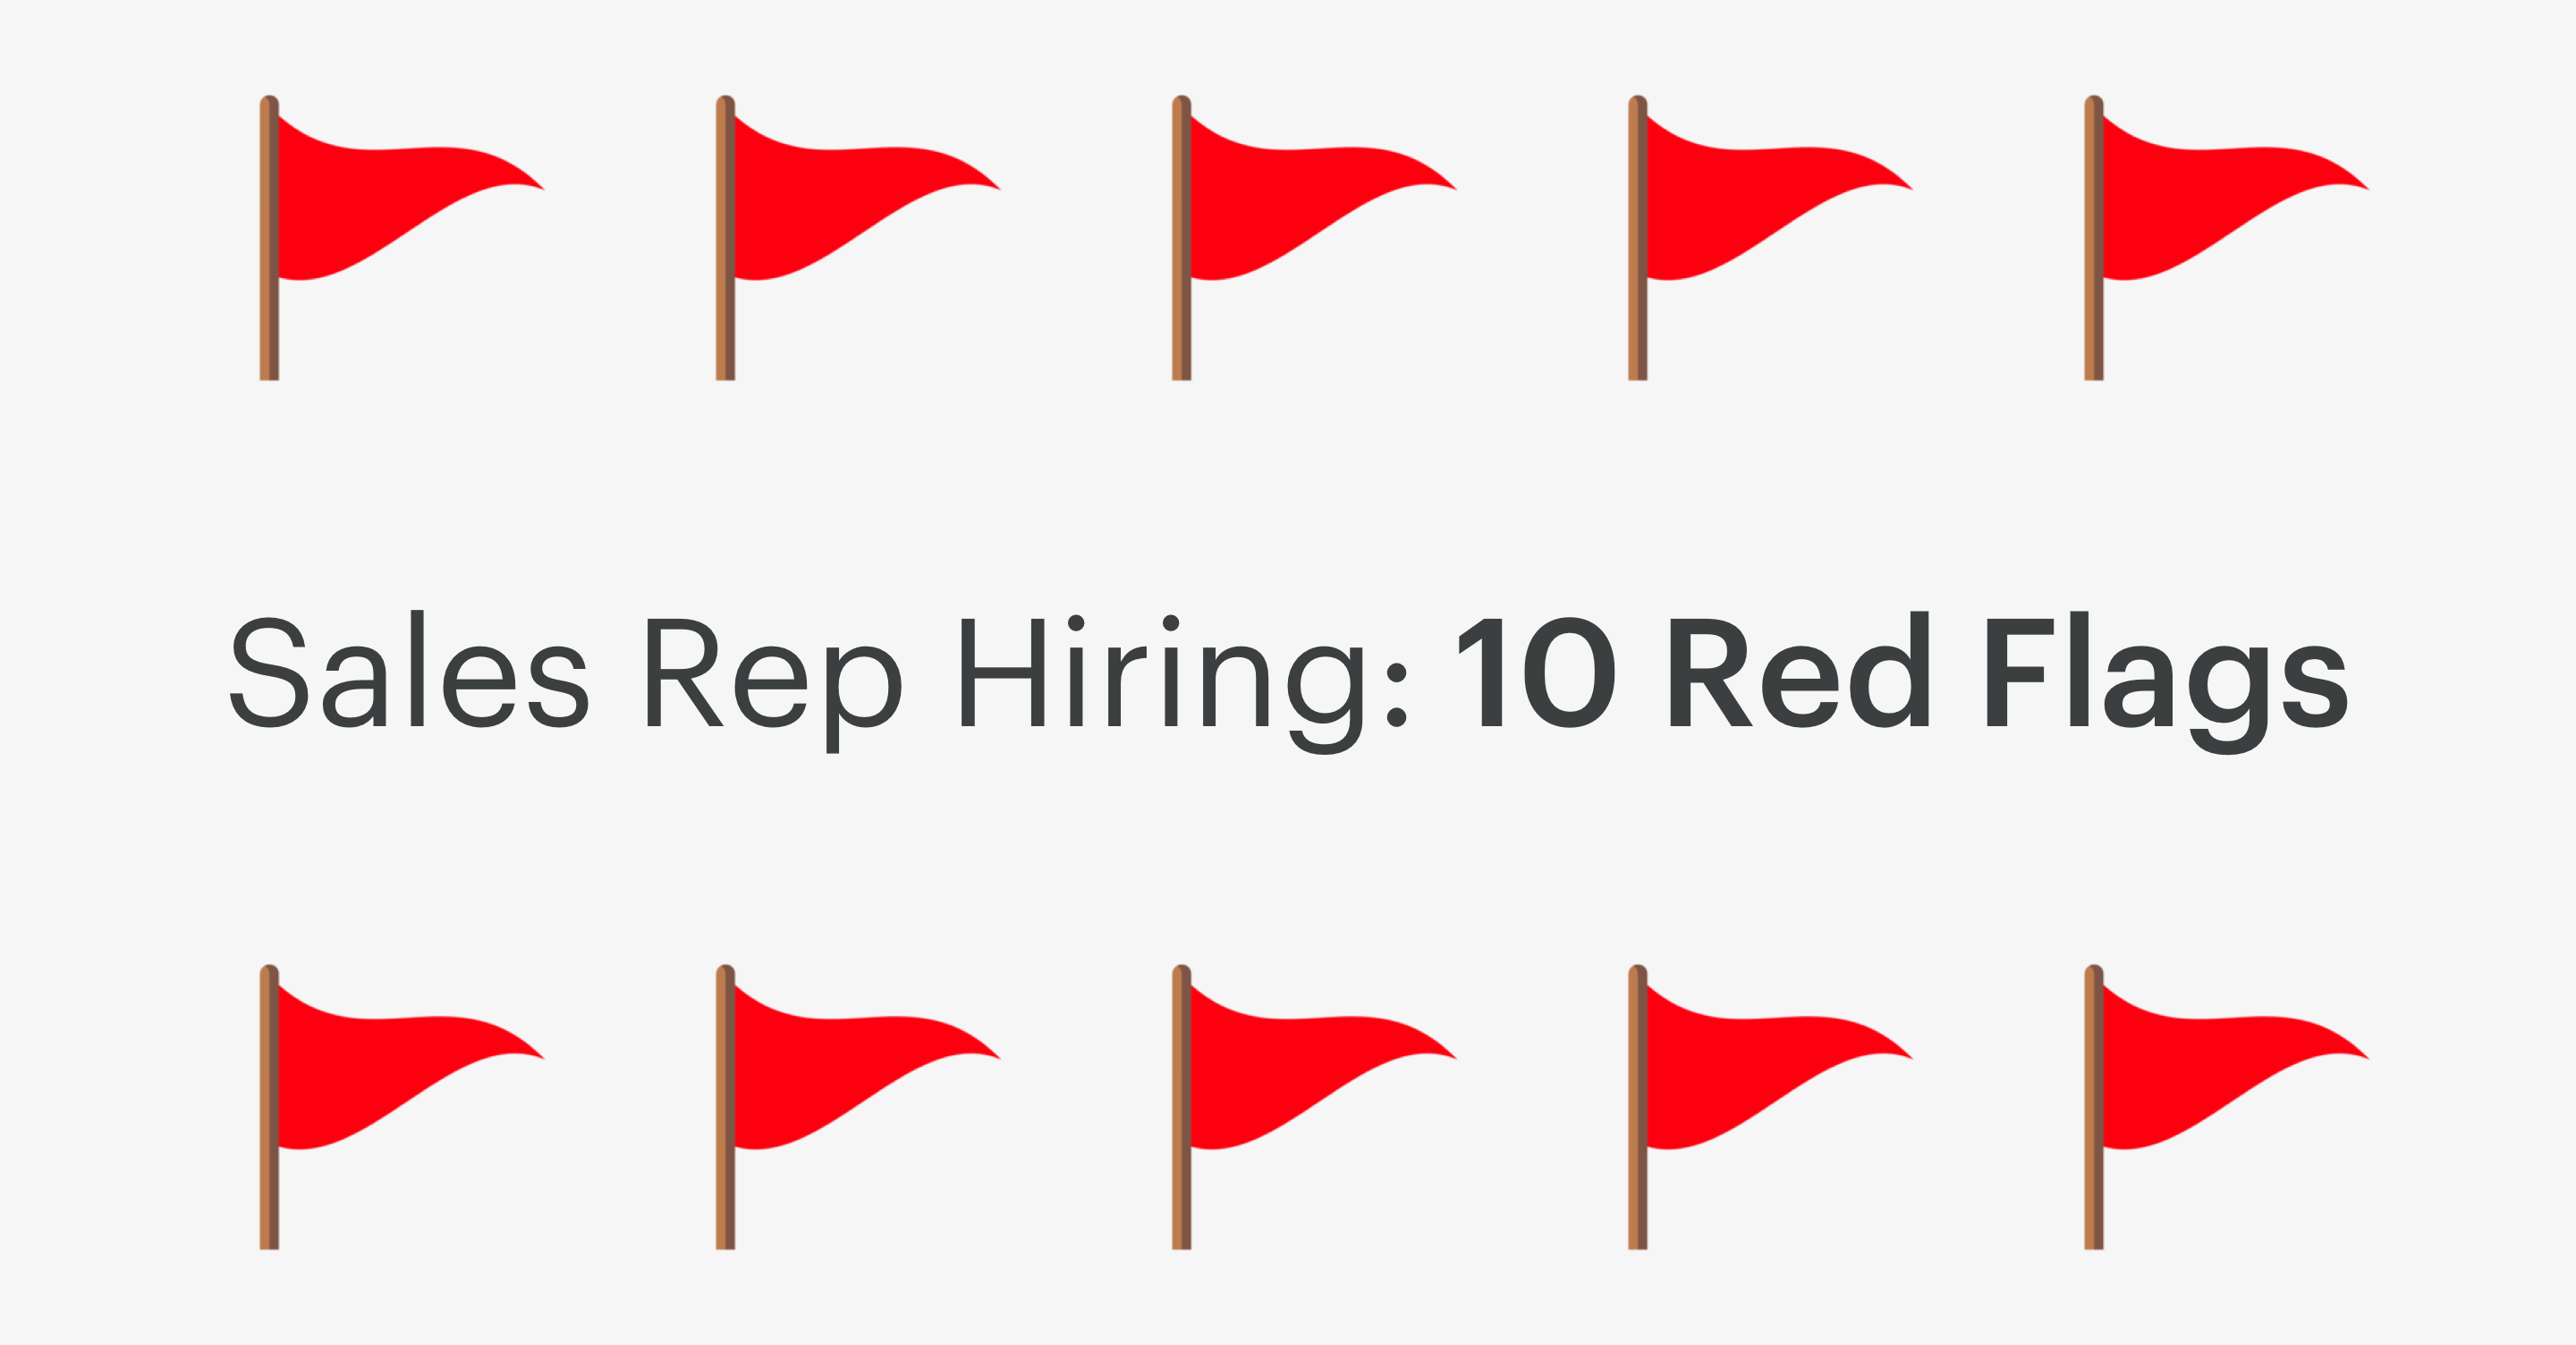 Sales Rep Hiring: 10 Red Flags